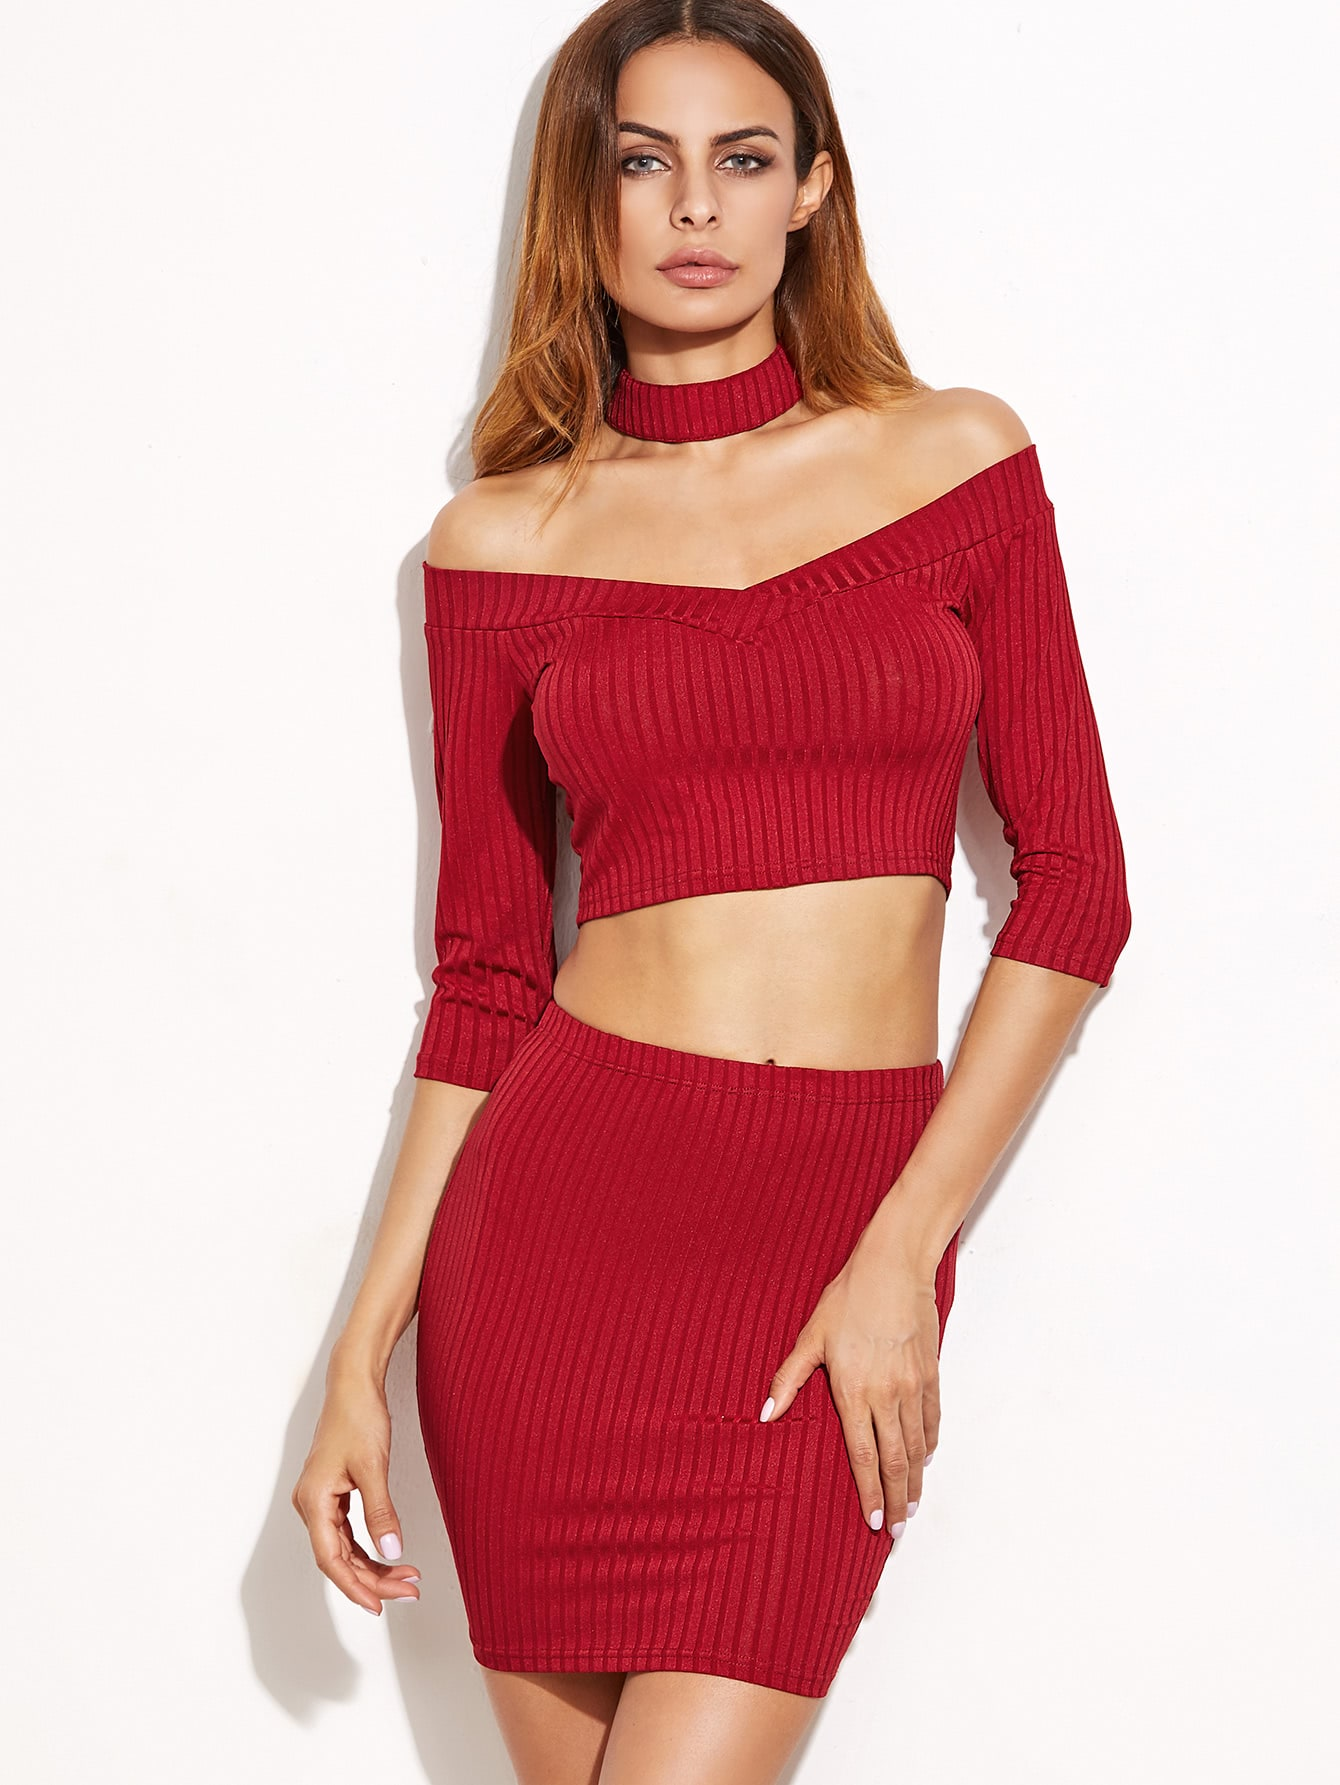 Burgundy Ribbed Knit Off The Shoulder T-shirt With Skirt twopiece161102701